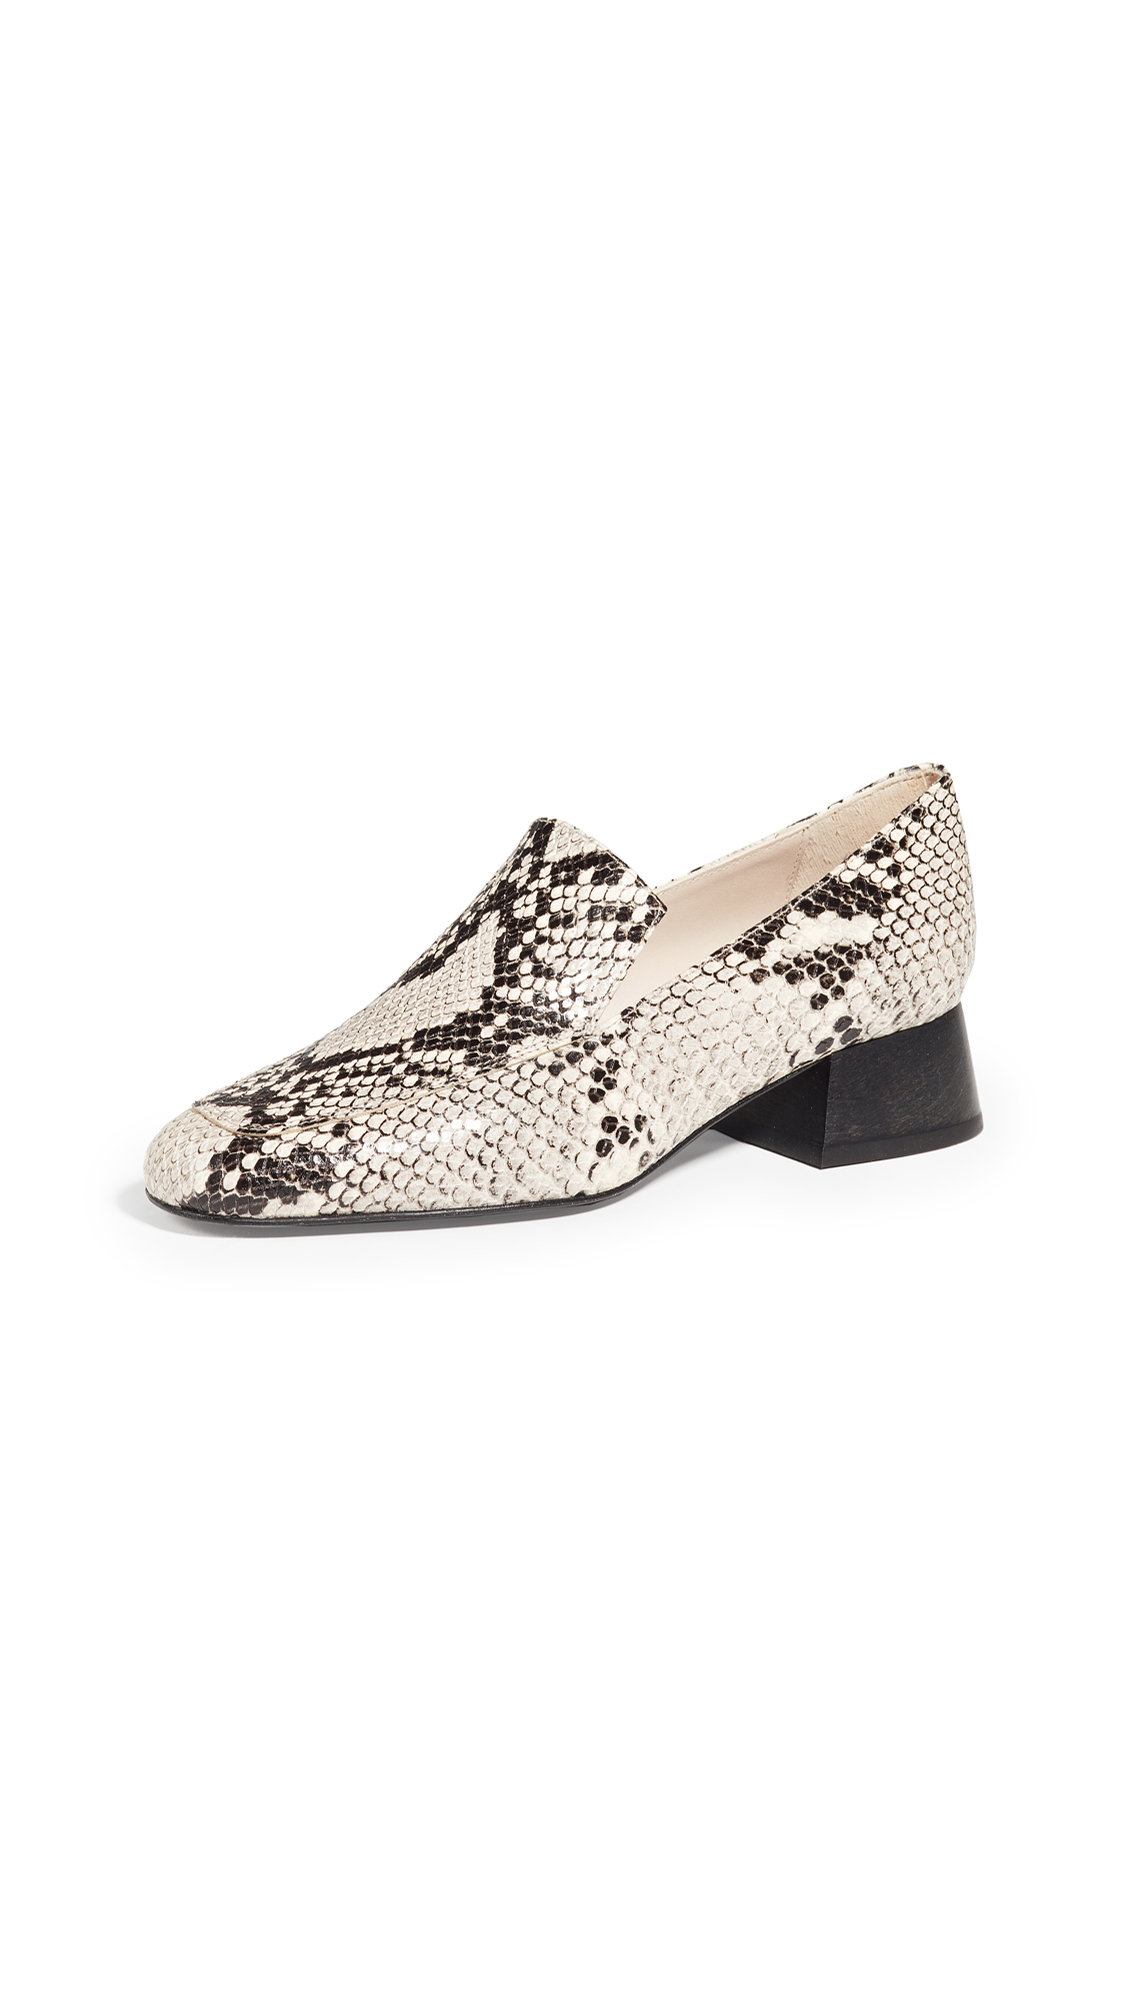 Freda Salvador Cooper Heeled Loafers